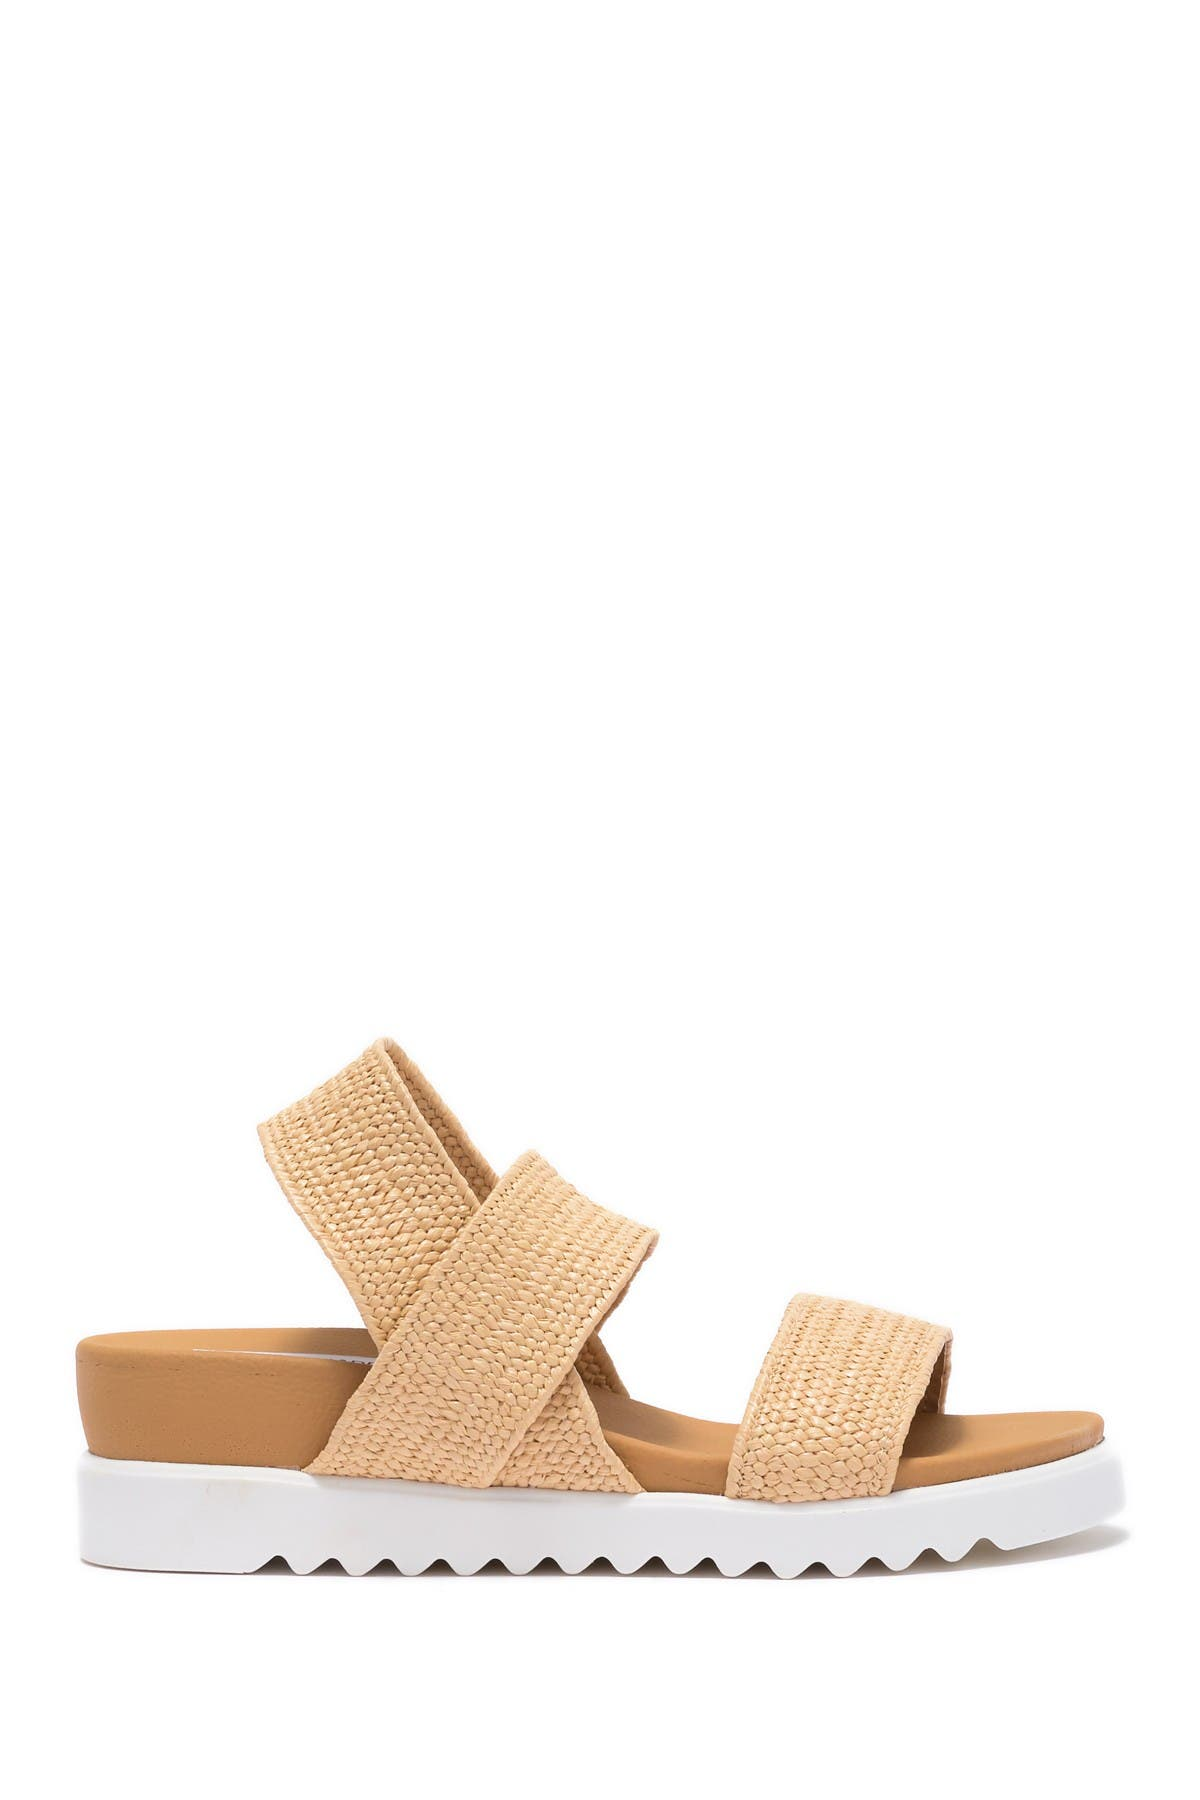 Steve Madden | Finesse Double Band